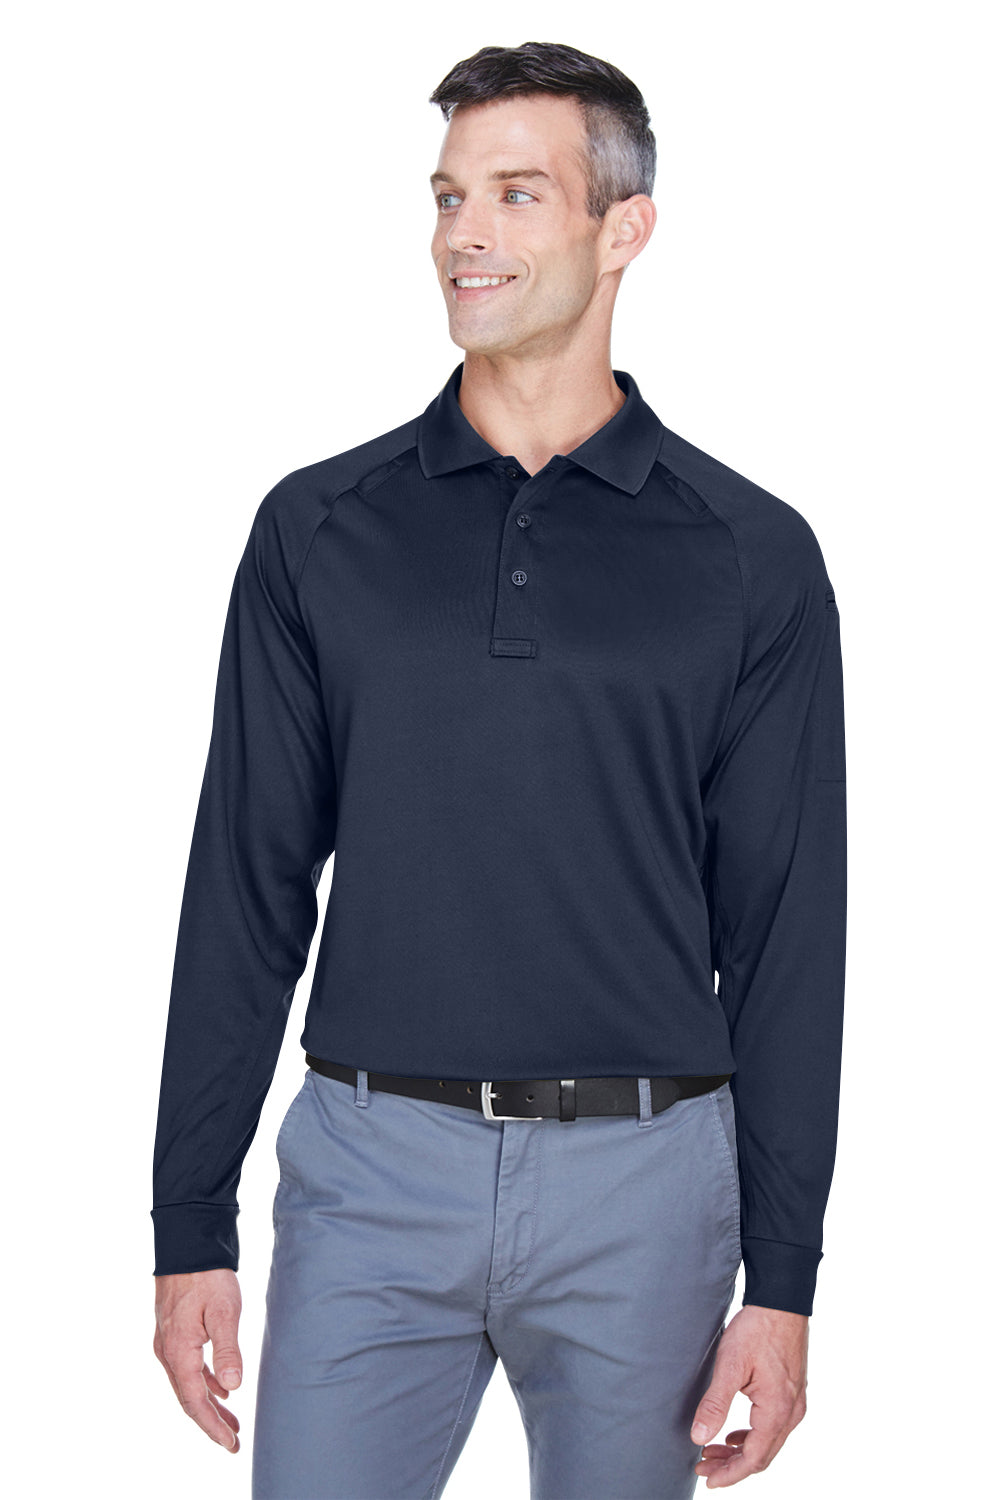 Harriton M211L Mens Advantage Tactical Moisture Wicking Long Sleeve Polo Shirt Navy Blue Front